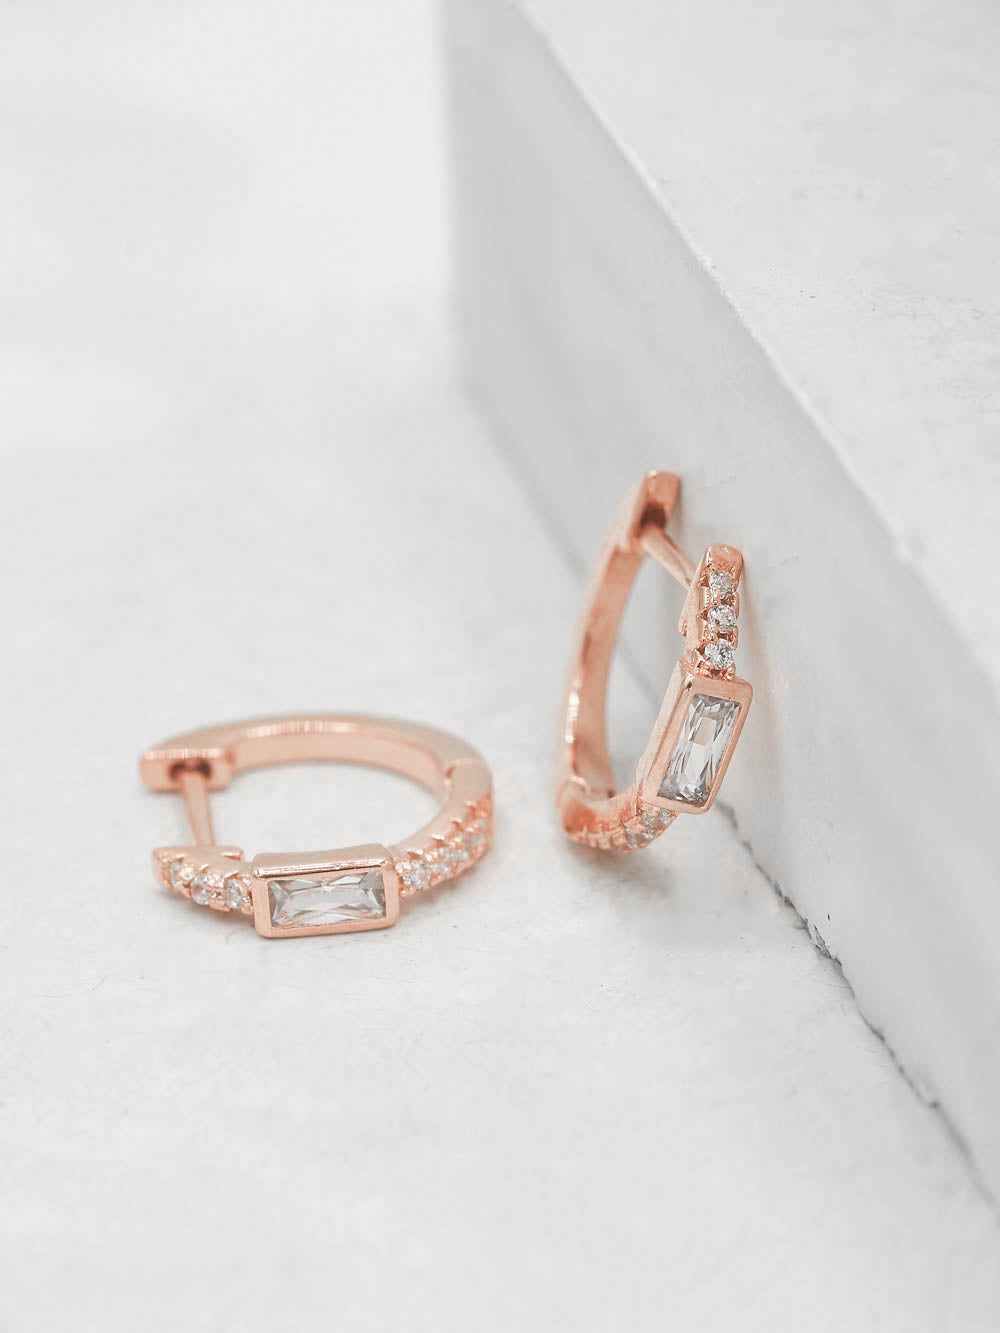 Rose Gold Plated Baguette and Round White Tiny CZ Hugggies Earrings by The Faint Hearted Jewelry